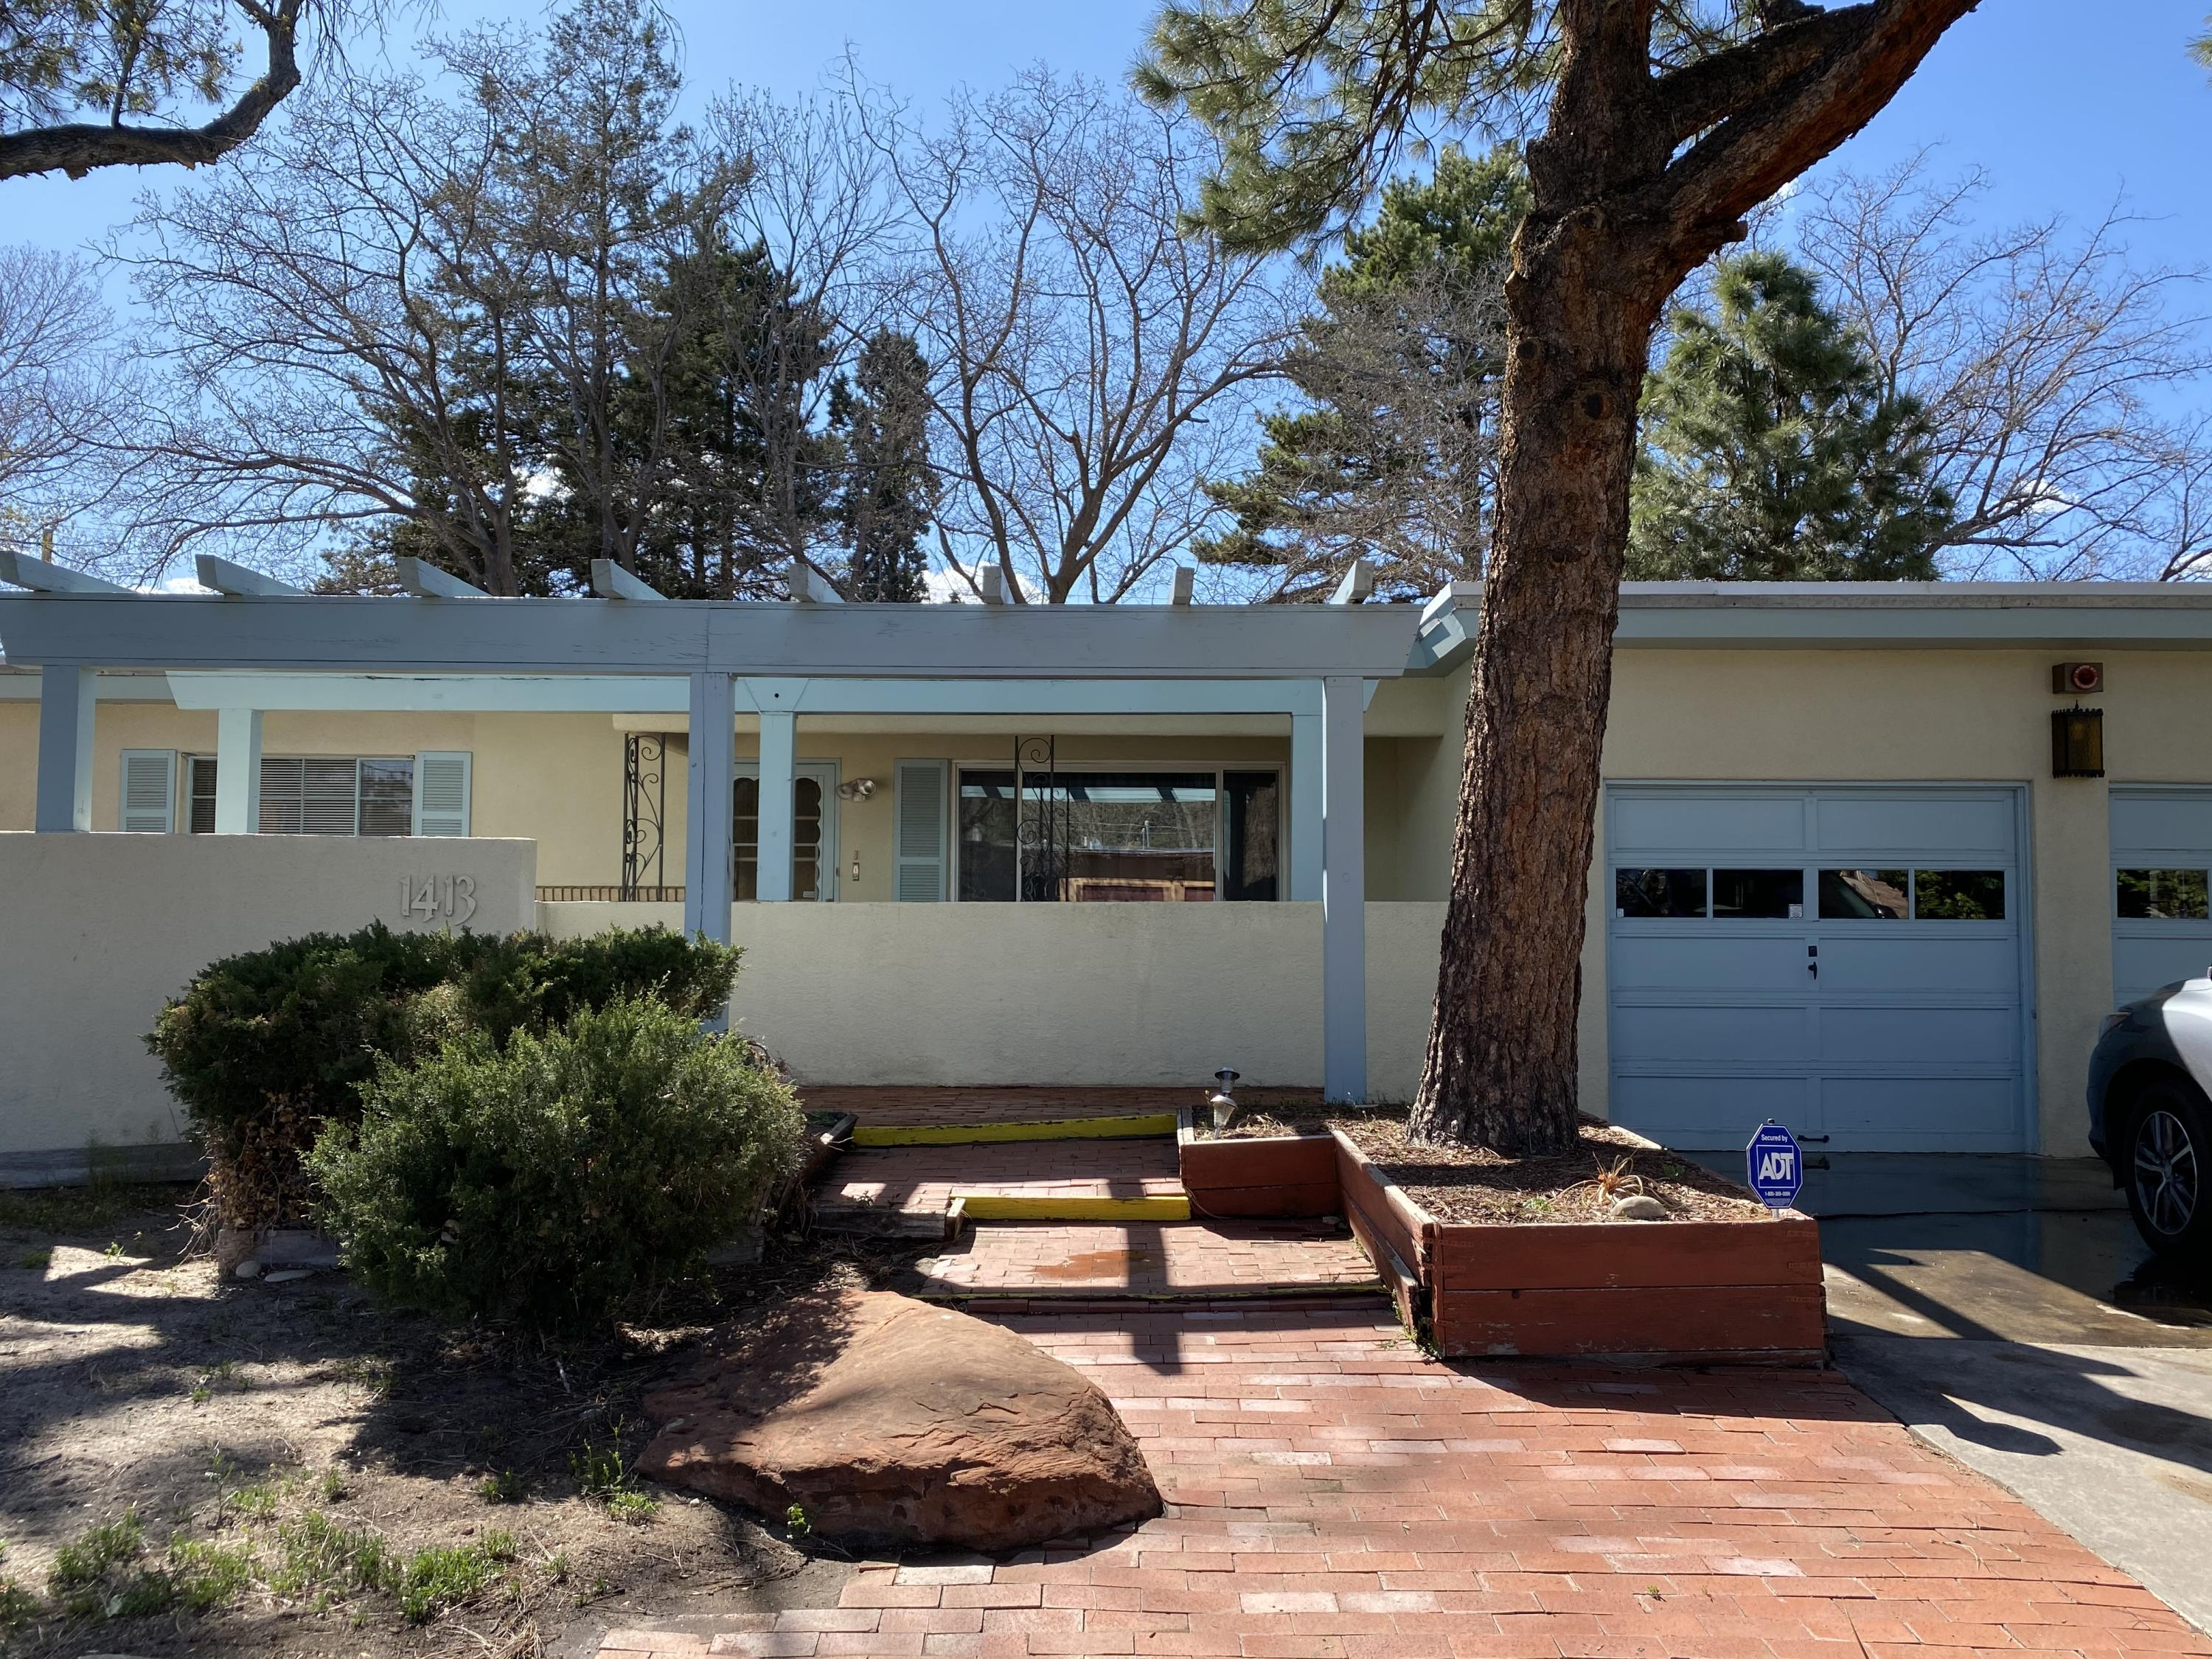 1413 WELLESLEY Drive NE, Albuquerque, NM 87106 - Albuquerque, NM real estate listing